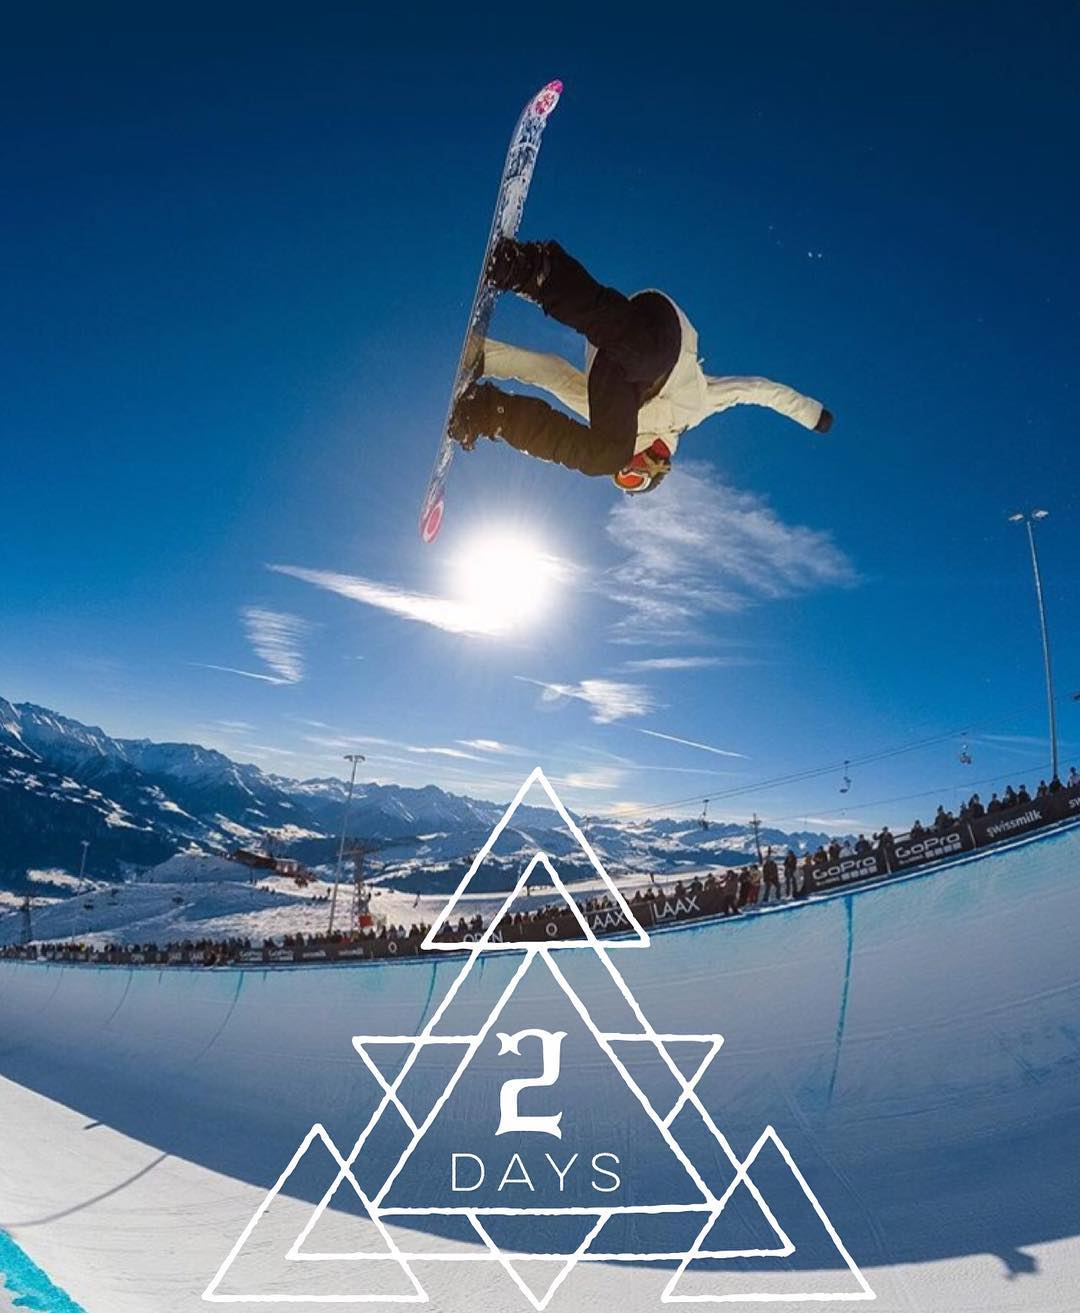 2 DAYS to B4BC's Snowboard + Music Festival at @sierra_at_tahoe—and you can win Jamie's GoPro! Join us this Saturday, April 2 to celebrate B4BC's 20th anniversary with a Big Air Expression Session with @JamieAnderson and friends, music by...